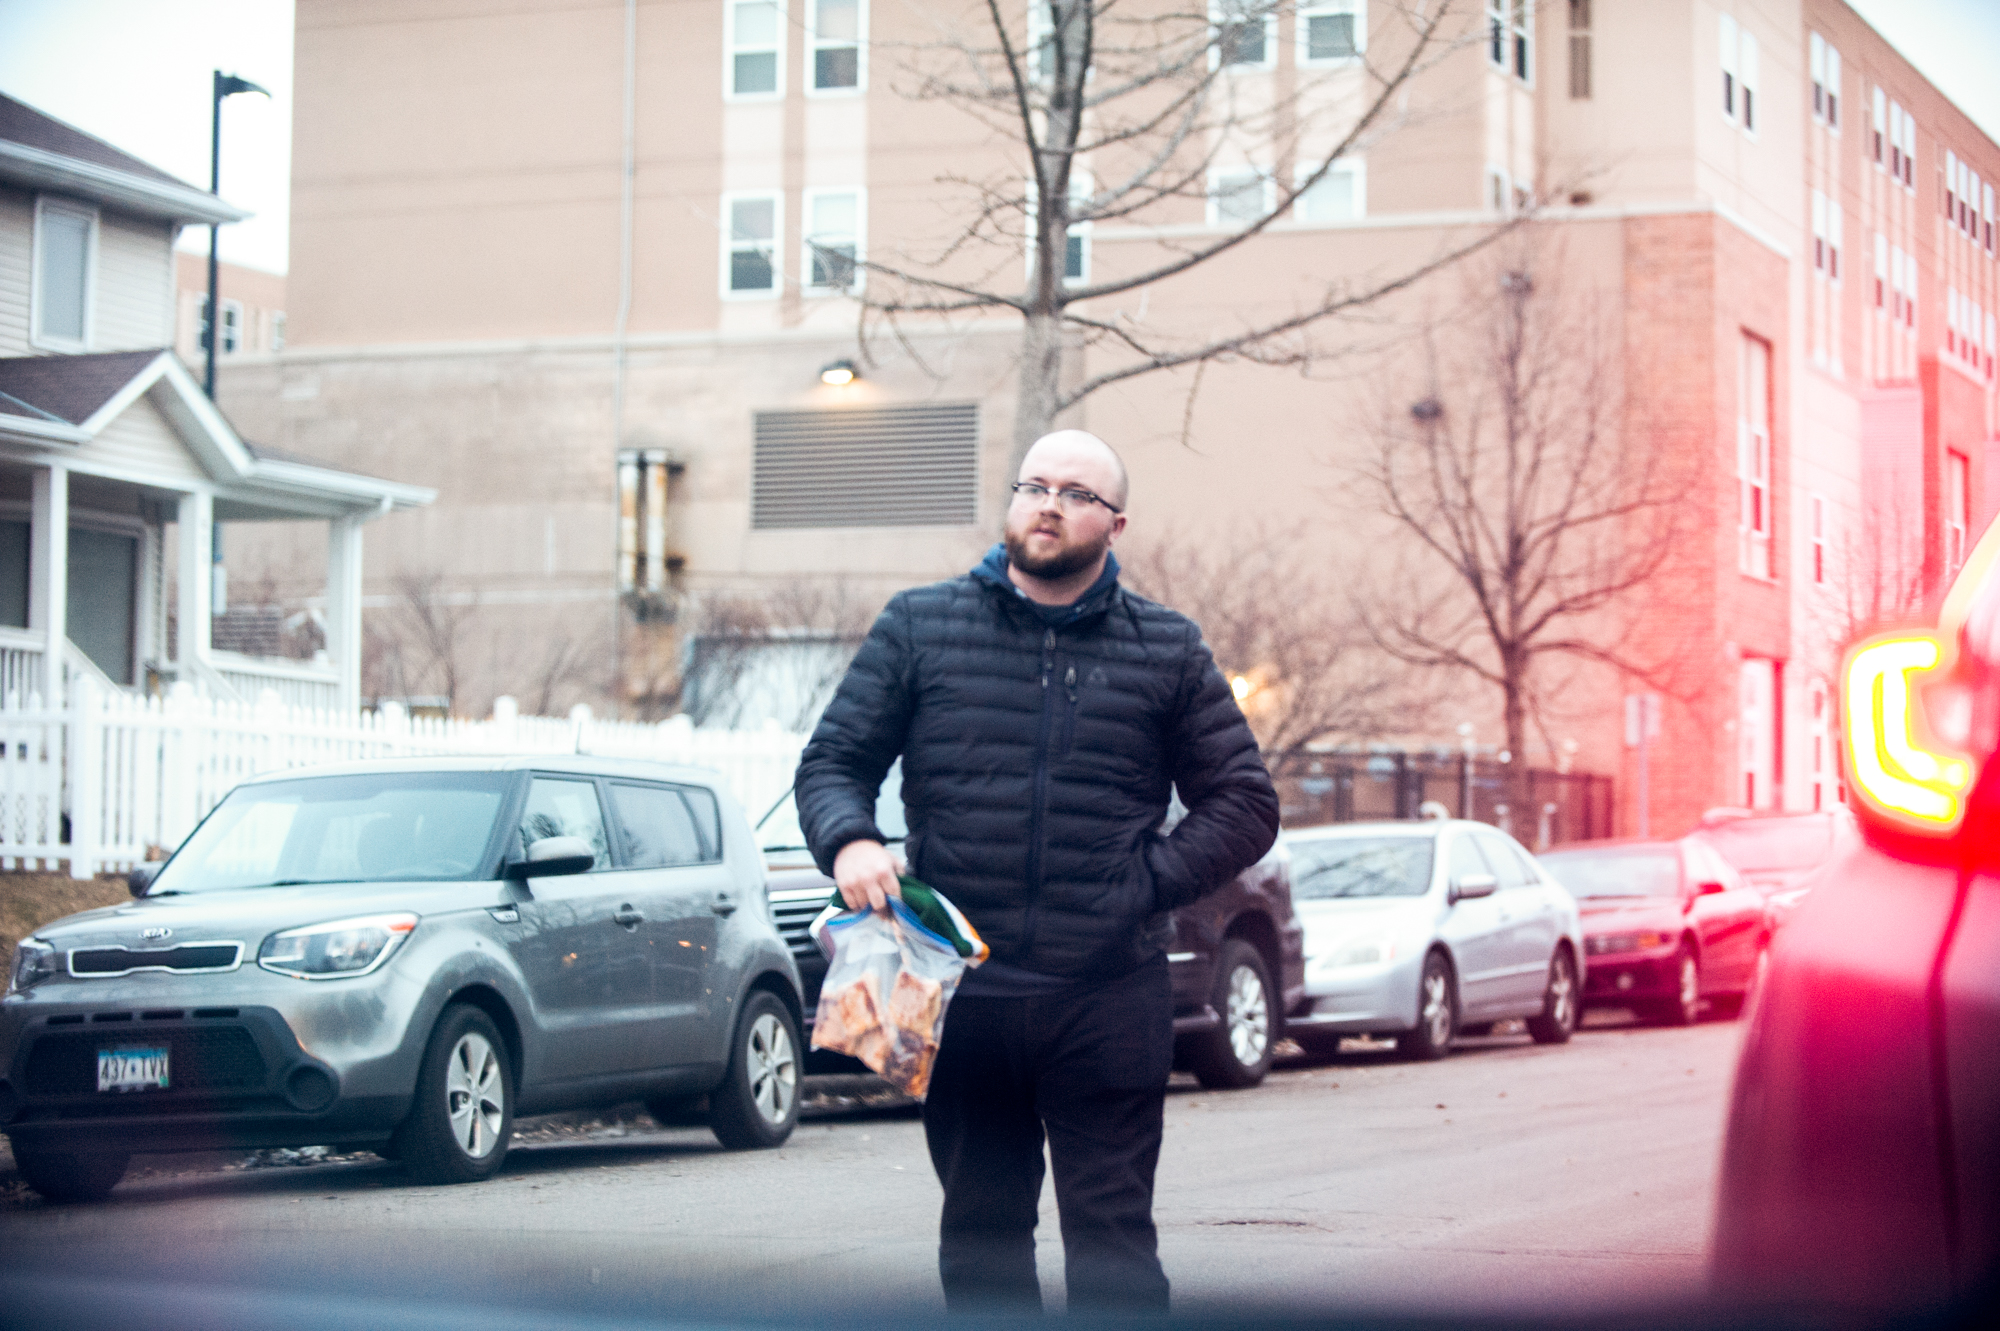 Writer Eli Radtke picking up a bag of Pâté chaud (or bánh patê sô) purchased on Facebook Marketplace // Photo by Daniel Murphy